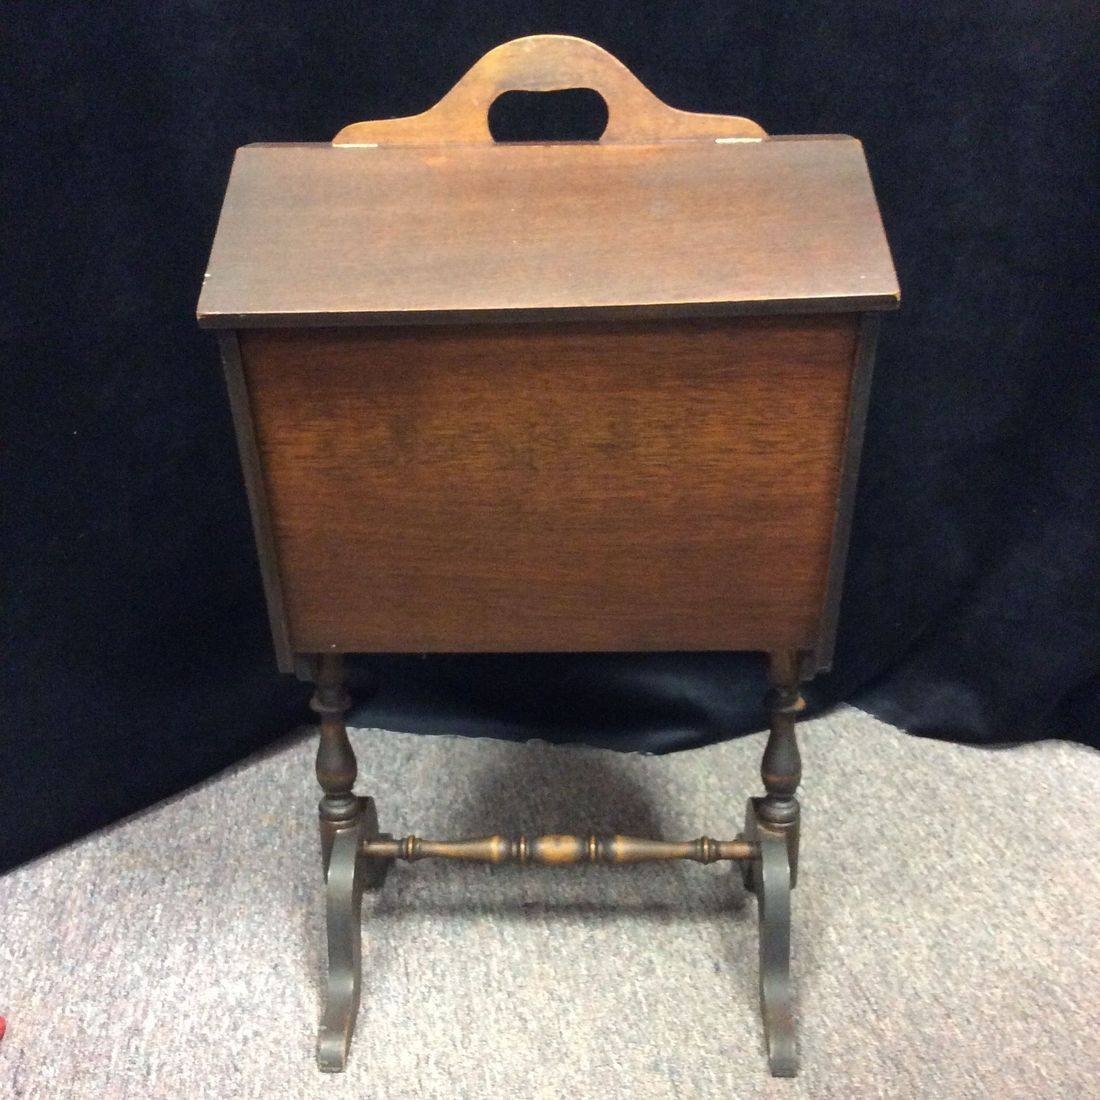 Vintage Mahogany, Flip-top Sewing Stand w/inside removable tray  $55.00